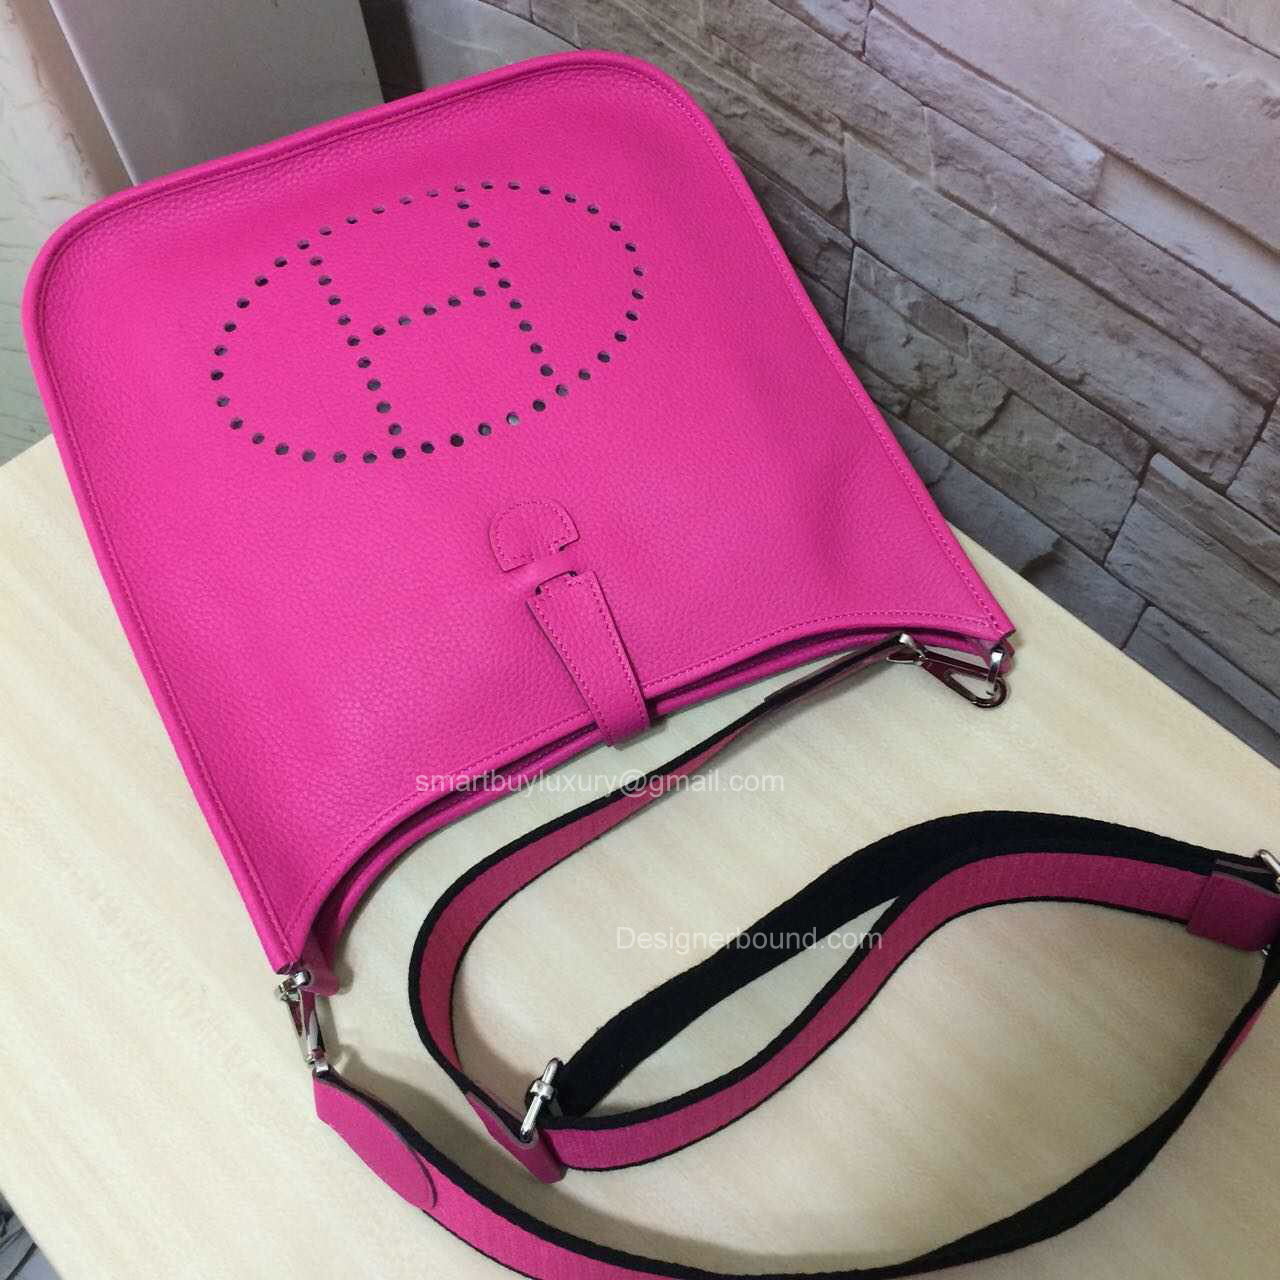 replica hermes wallets - Hermes Evelyne III Bag PM in Hot Pink Togo Leather -